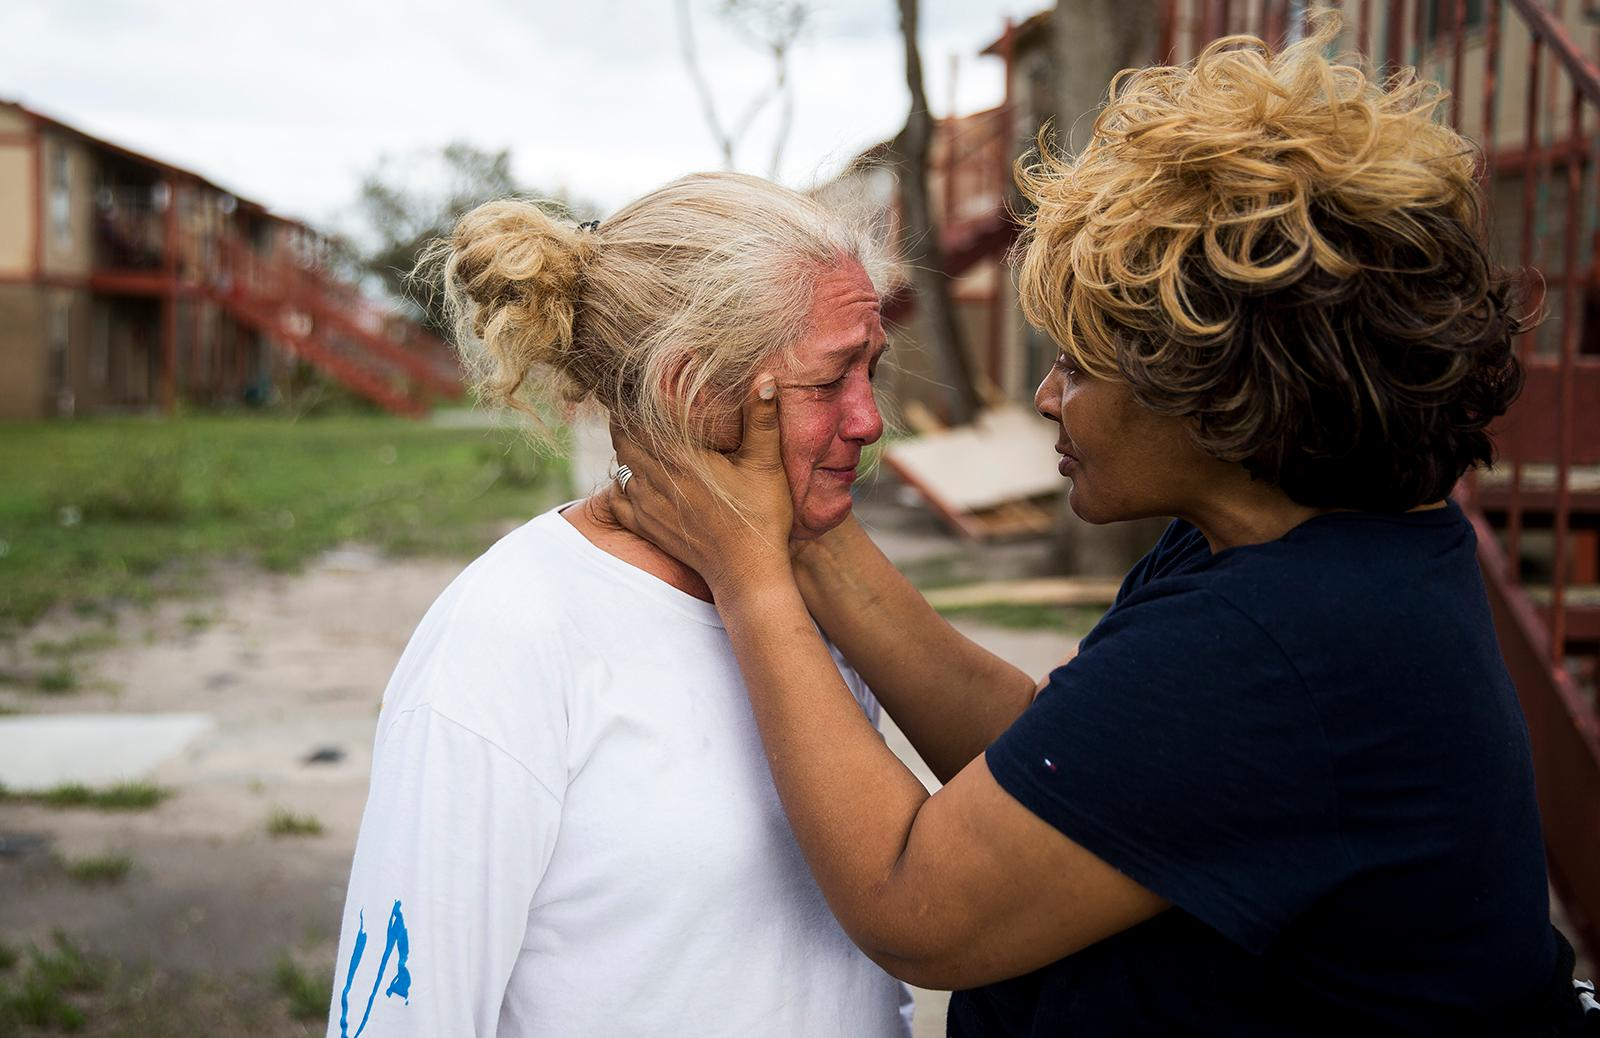 "Genice Gipson comforts her lifelong friend, Loretta Capistran, outside of Capistran's apartment complex in Refugio, Texas, on Monday, Aug. 28, 2017. ""We got to be strong, baby,"" Gipson told Capistran. (Nick Wagner/Austin American-Statesman via AP)"